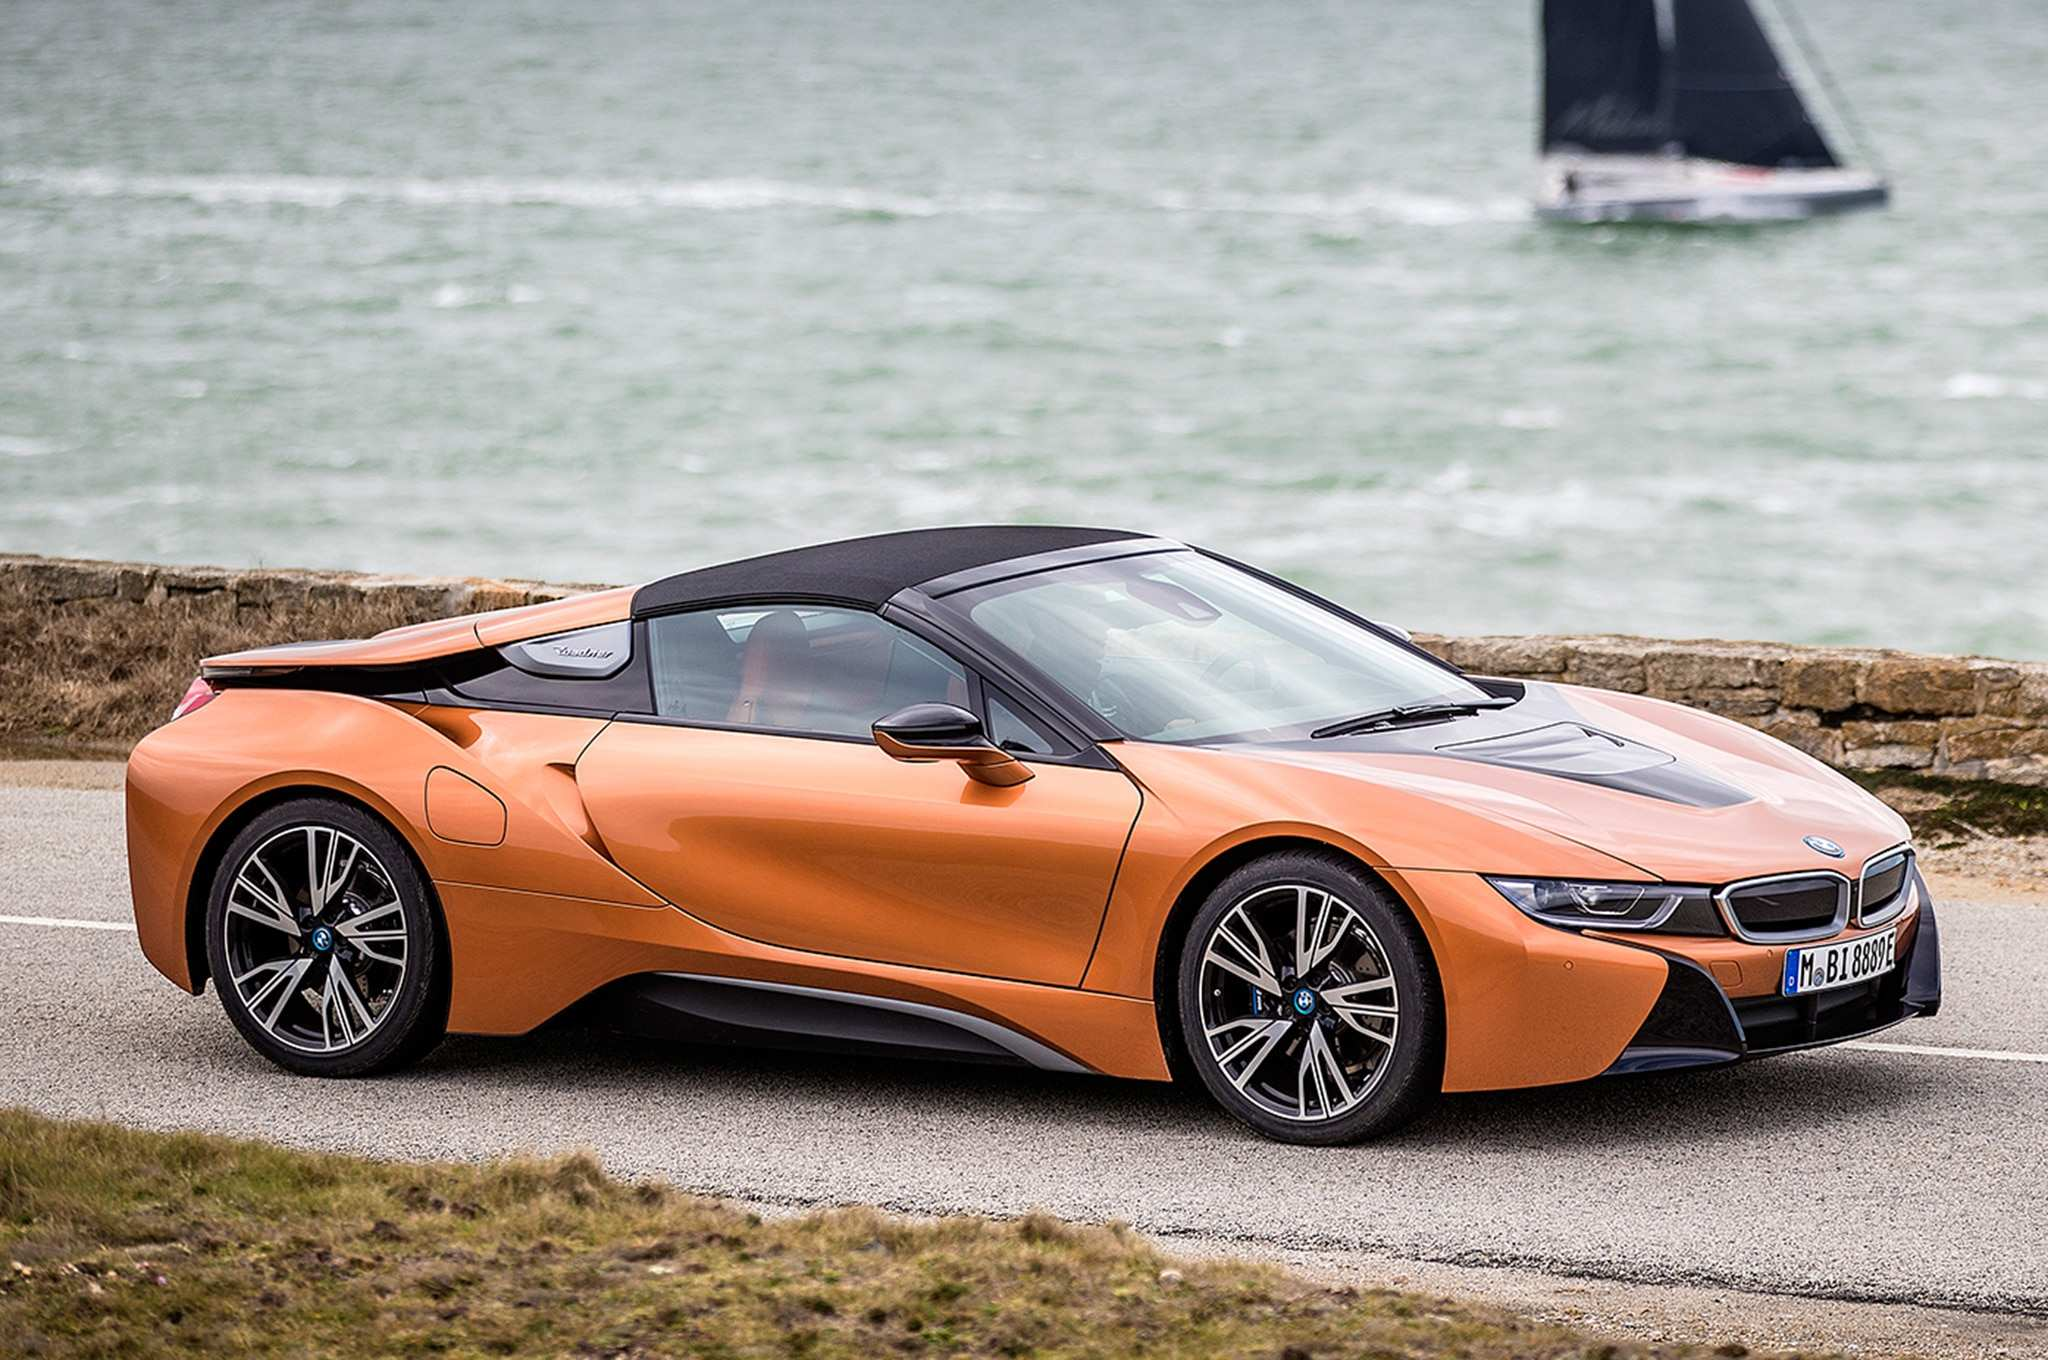 82 Gallery of Bmw I8 2020 Performance and New Engine for Bmw I8 2020